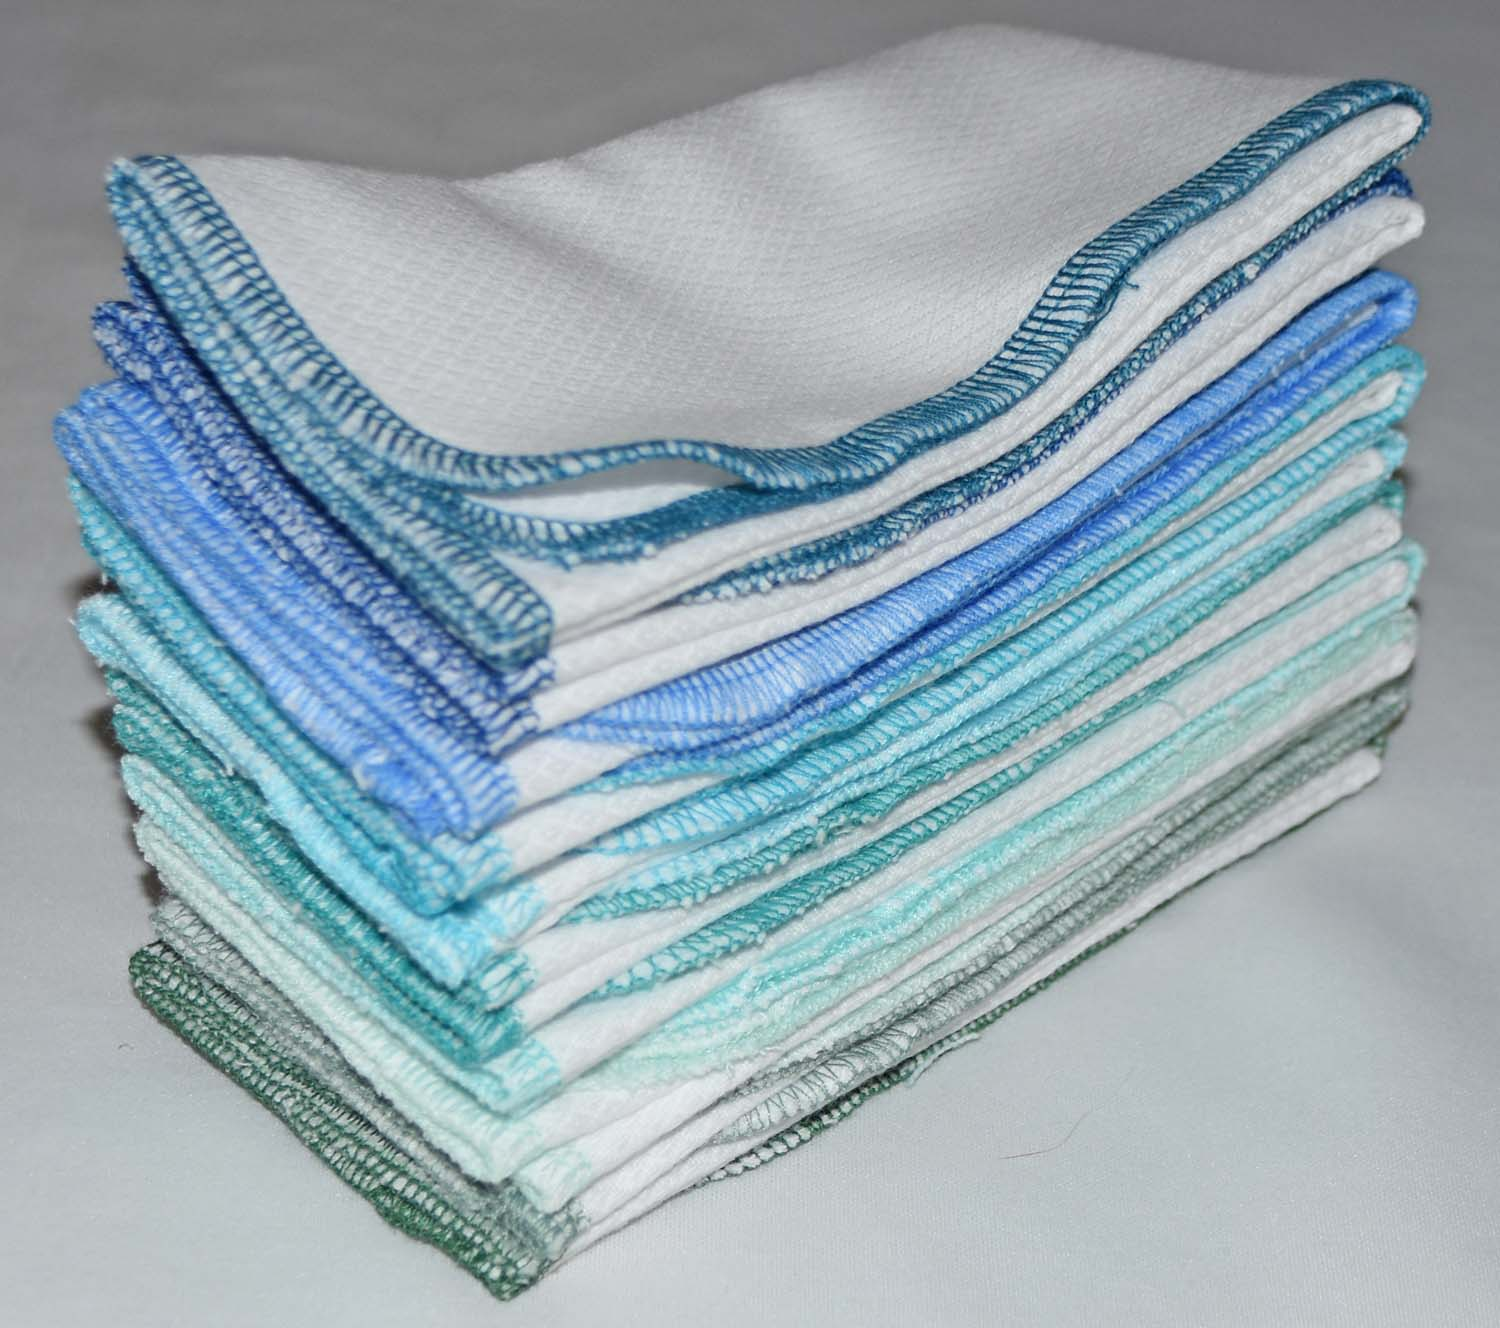 1-Ply Made from Natural Unbleached Cotton Birdseye Fabric Large Paperless Towels 14x14 inches Set of 10 in Rainbow